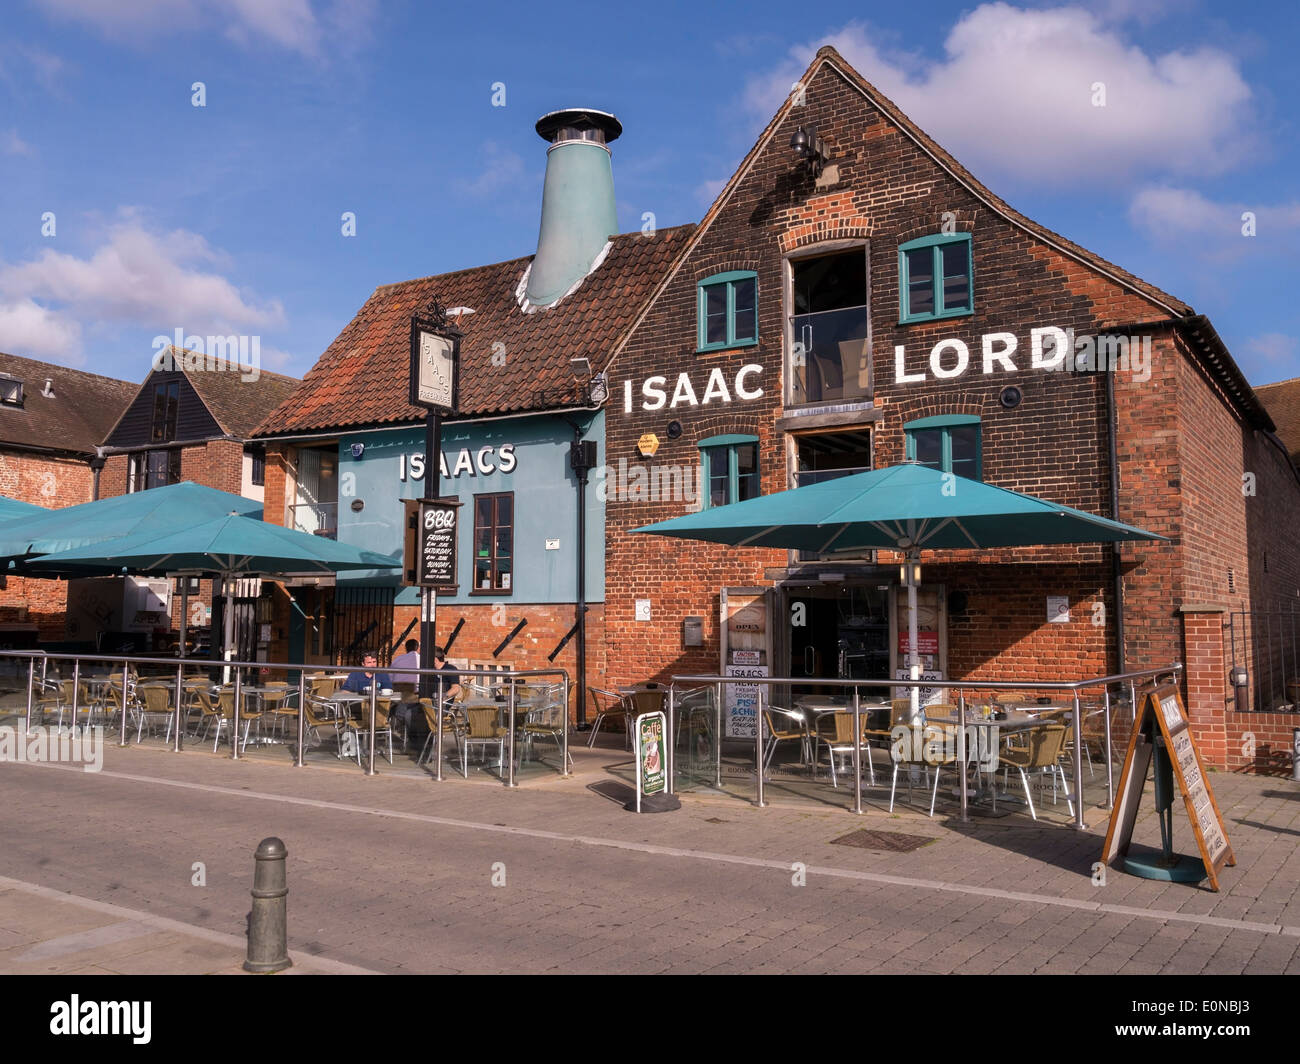 Old Isaac Lord ( Isaacs) restaurant and pub on the Quayside, Ipswich, Suffolk, UK - Stock Image